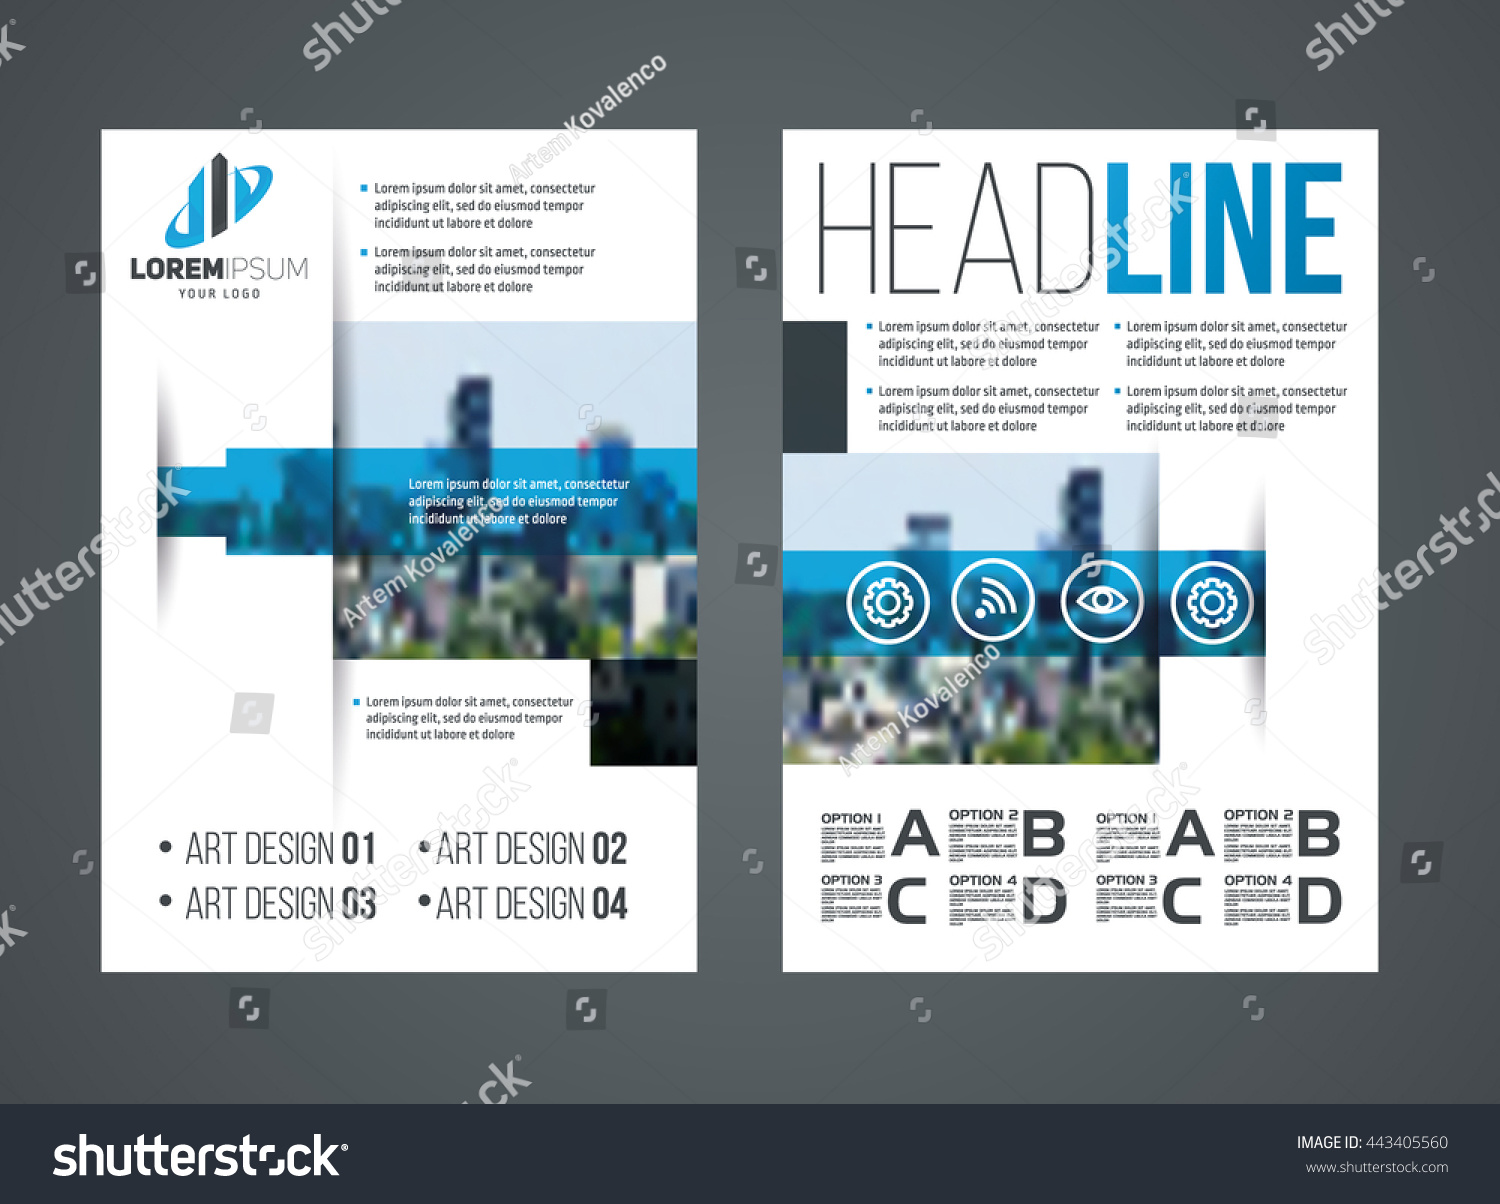 doc690928 flyers examples – Flyers Examples